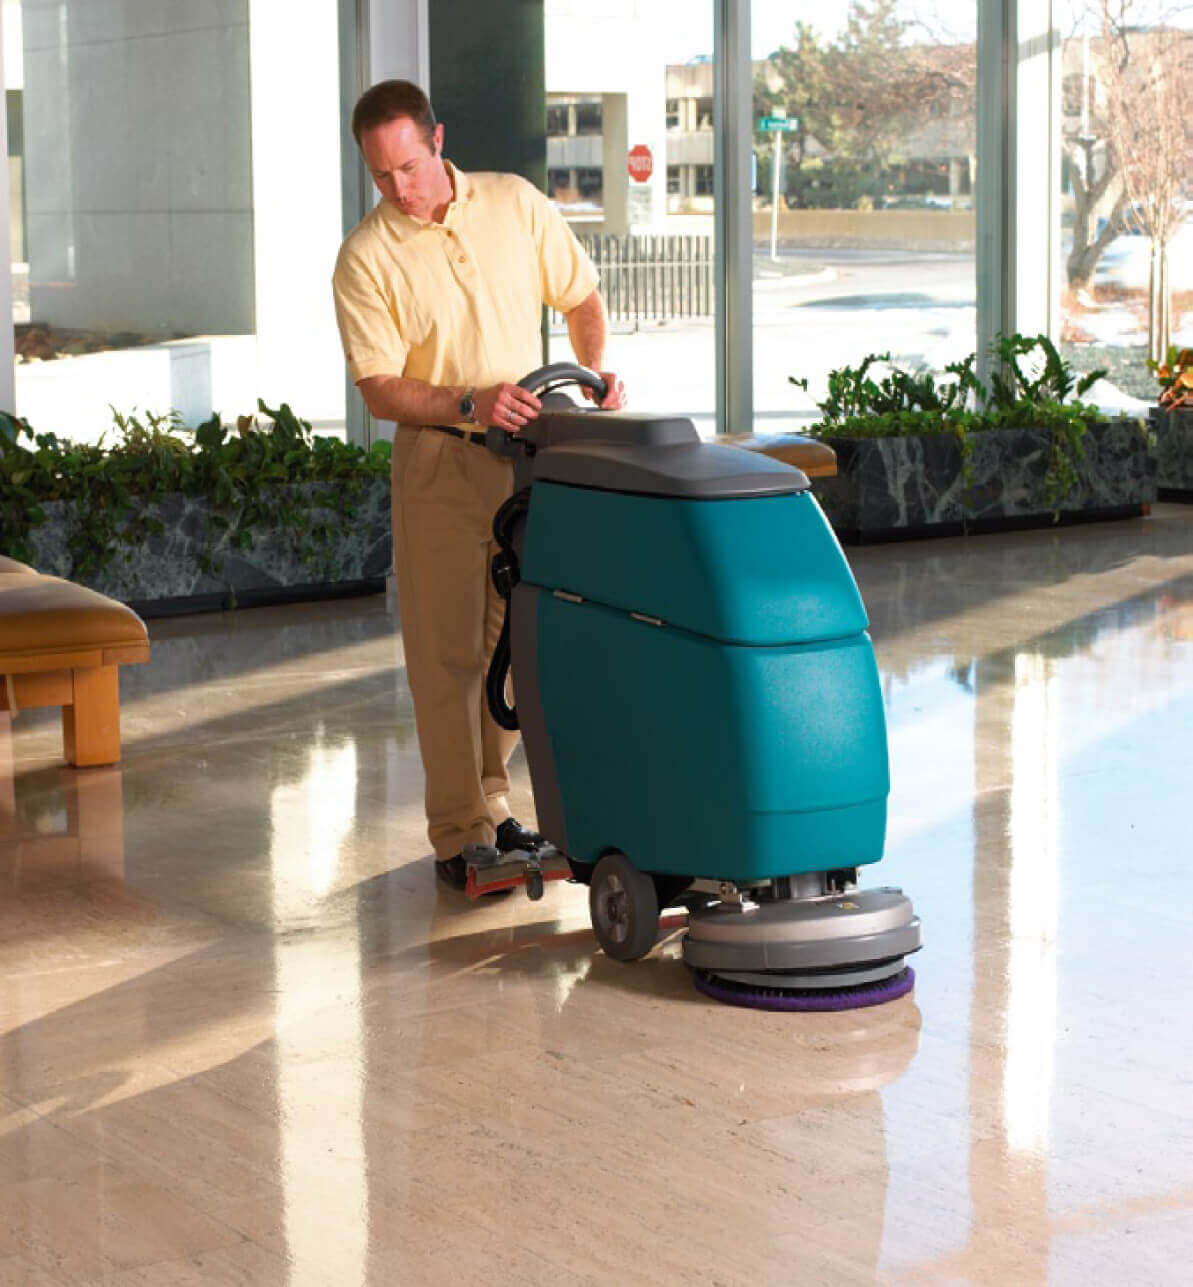 Jangro Floor Cleaning Supplies - buy floor cleaning products today